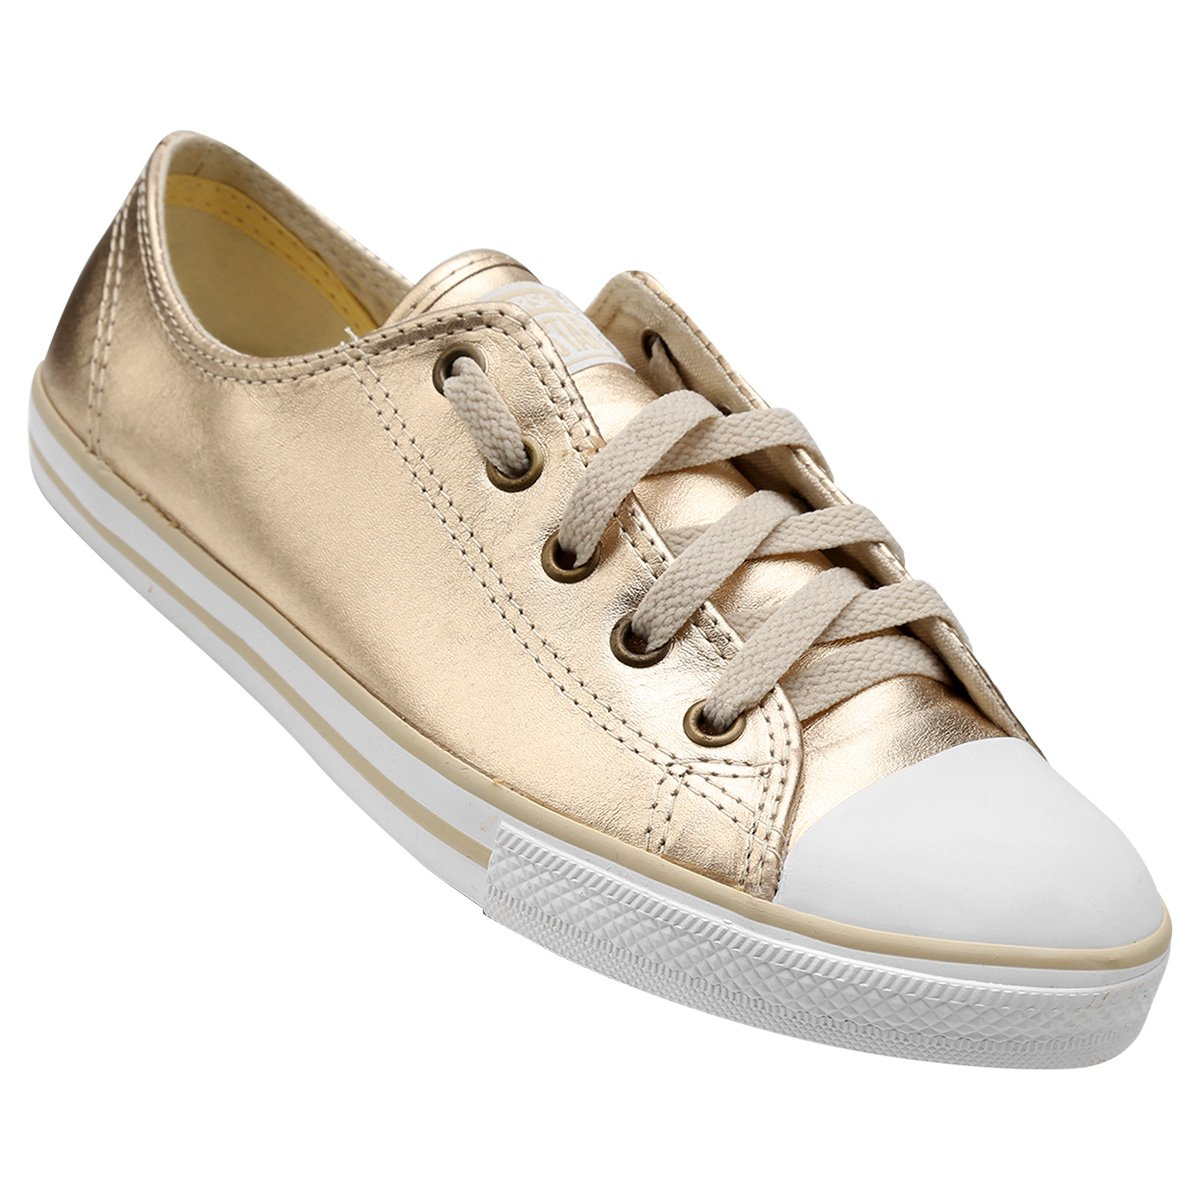 e8b5529151 Tênis Converse All Star Ct As Dainty Leather Ox - Compre Agora